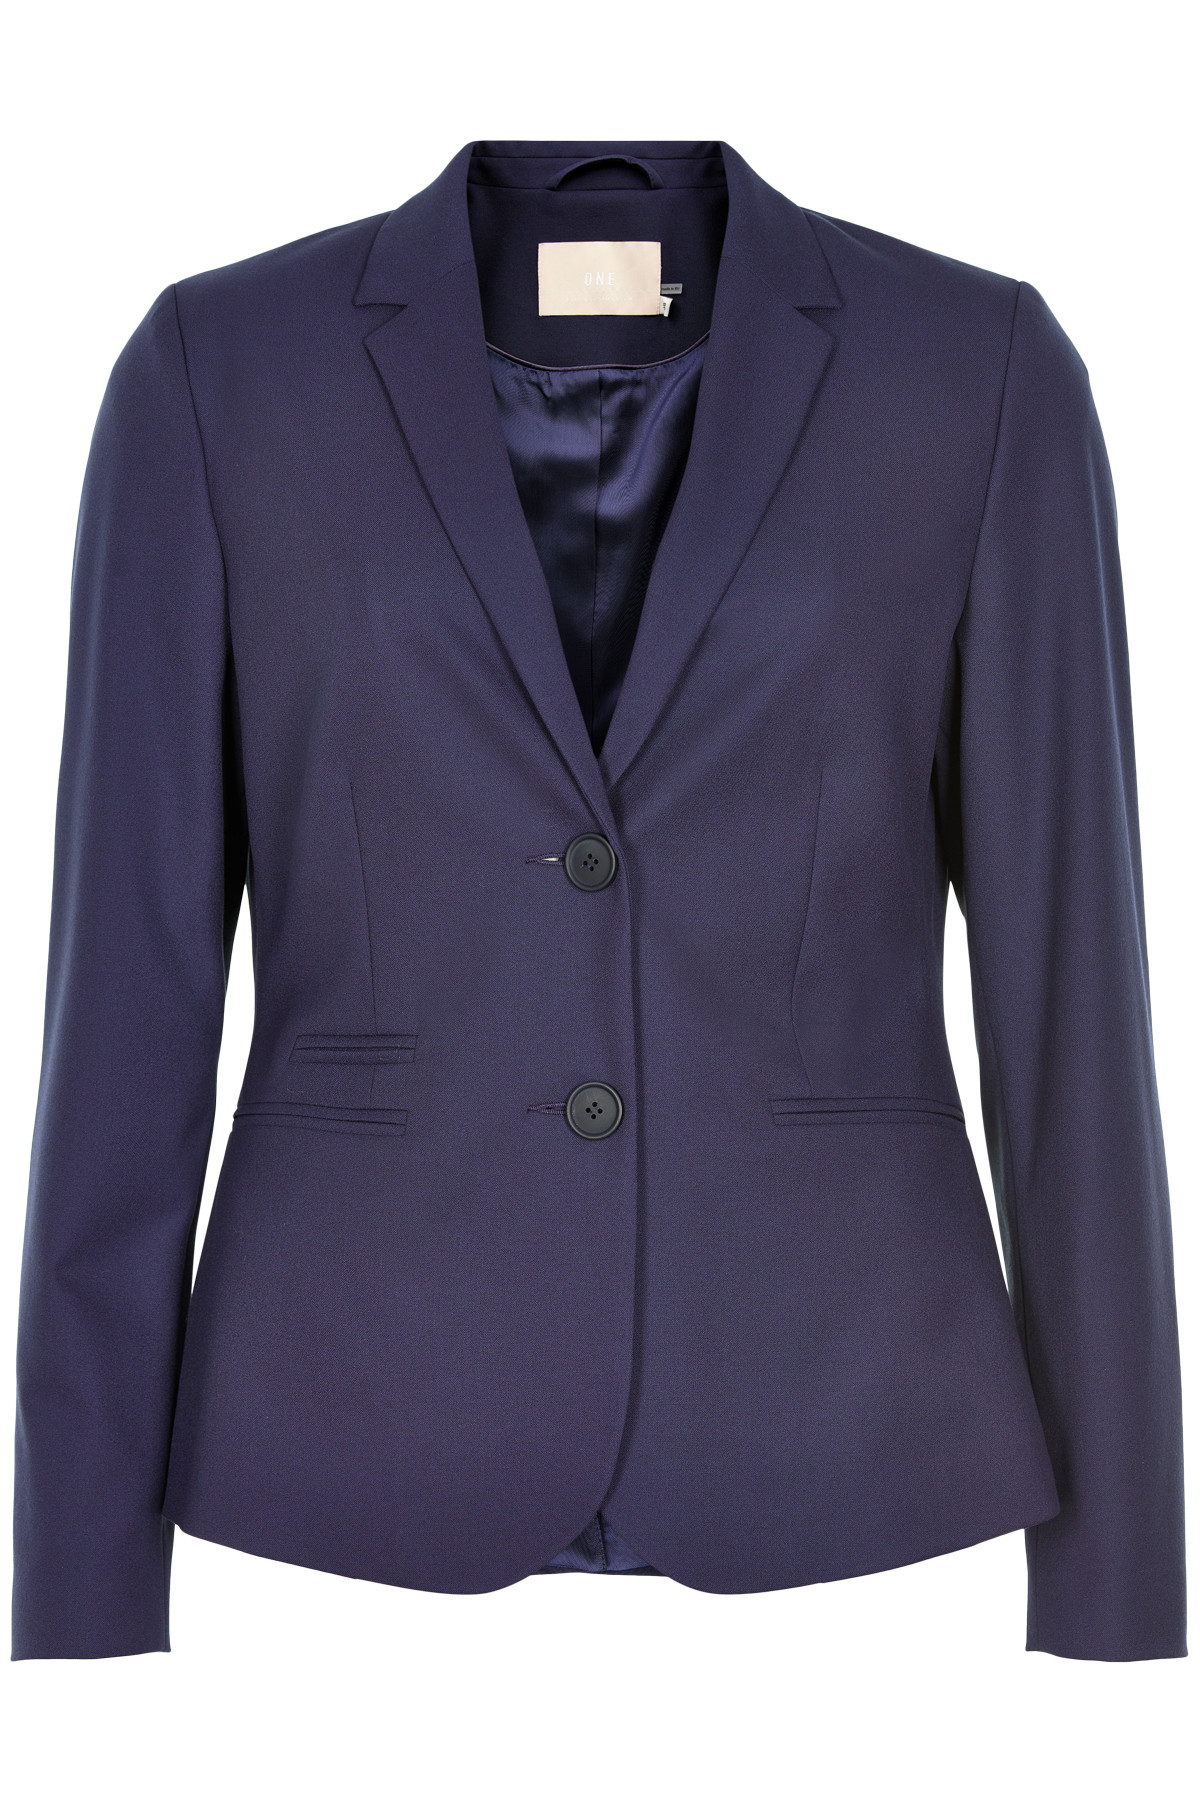 Image of   KAREN BY SIMONSEN SYDNEY BLAZER 10102089 (Dark Blue 40520, 42)